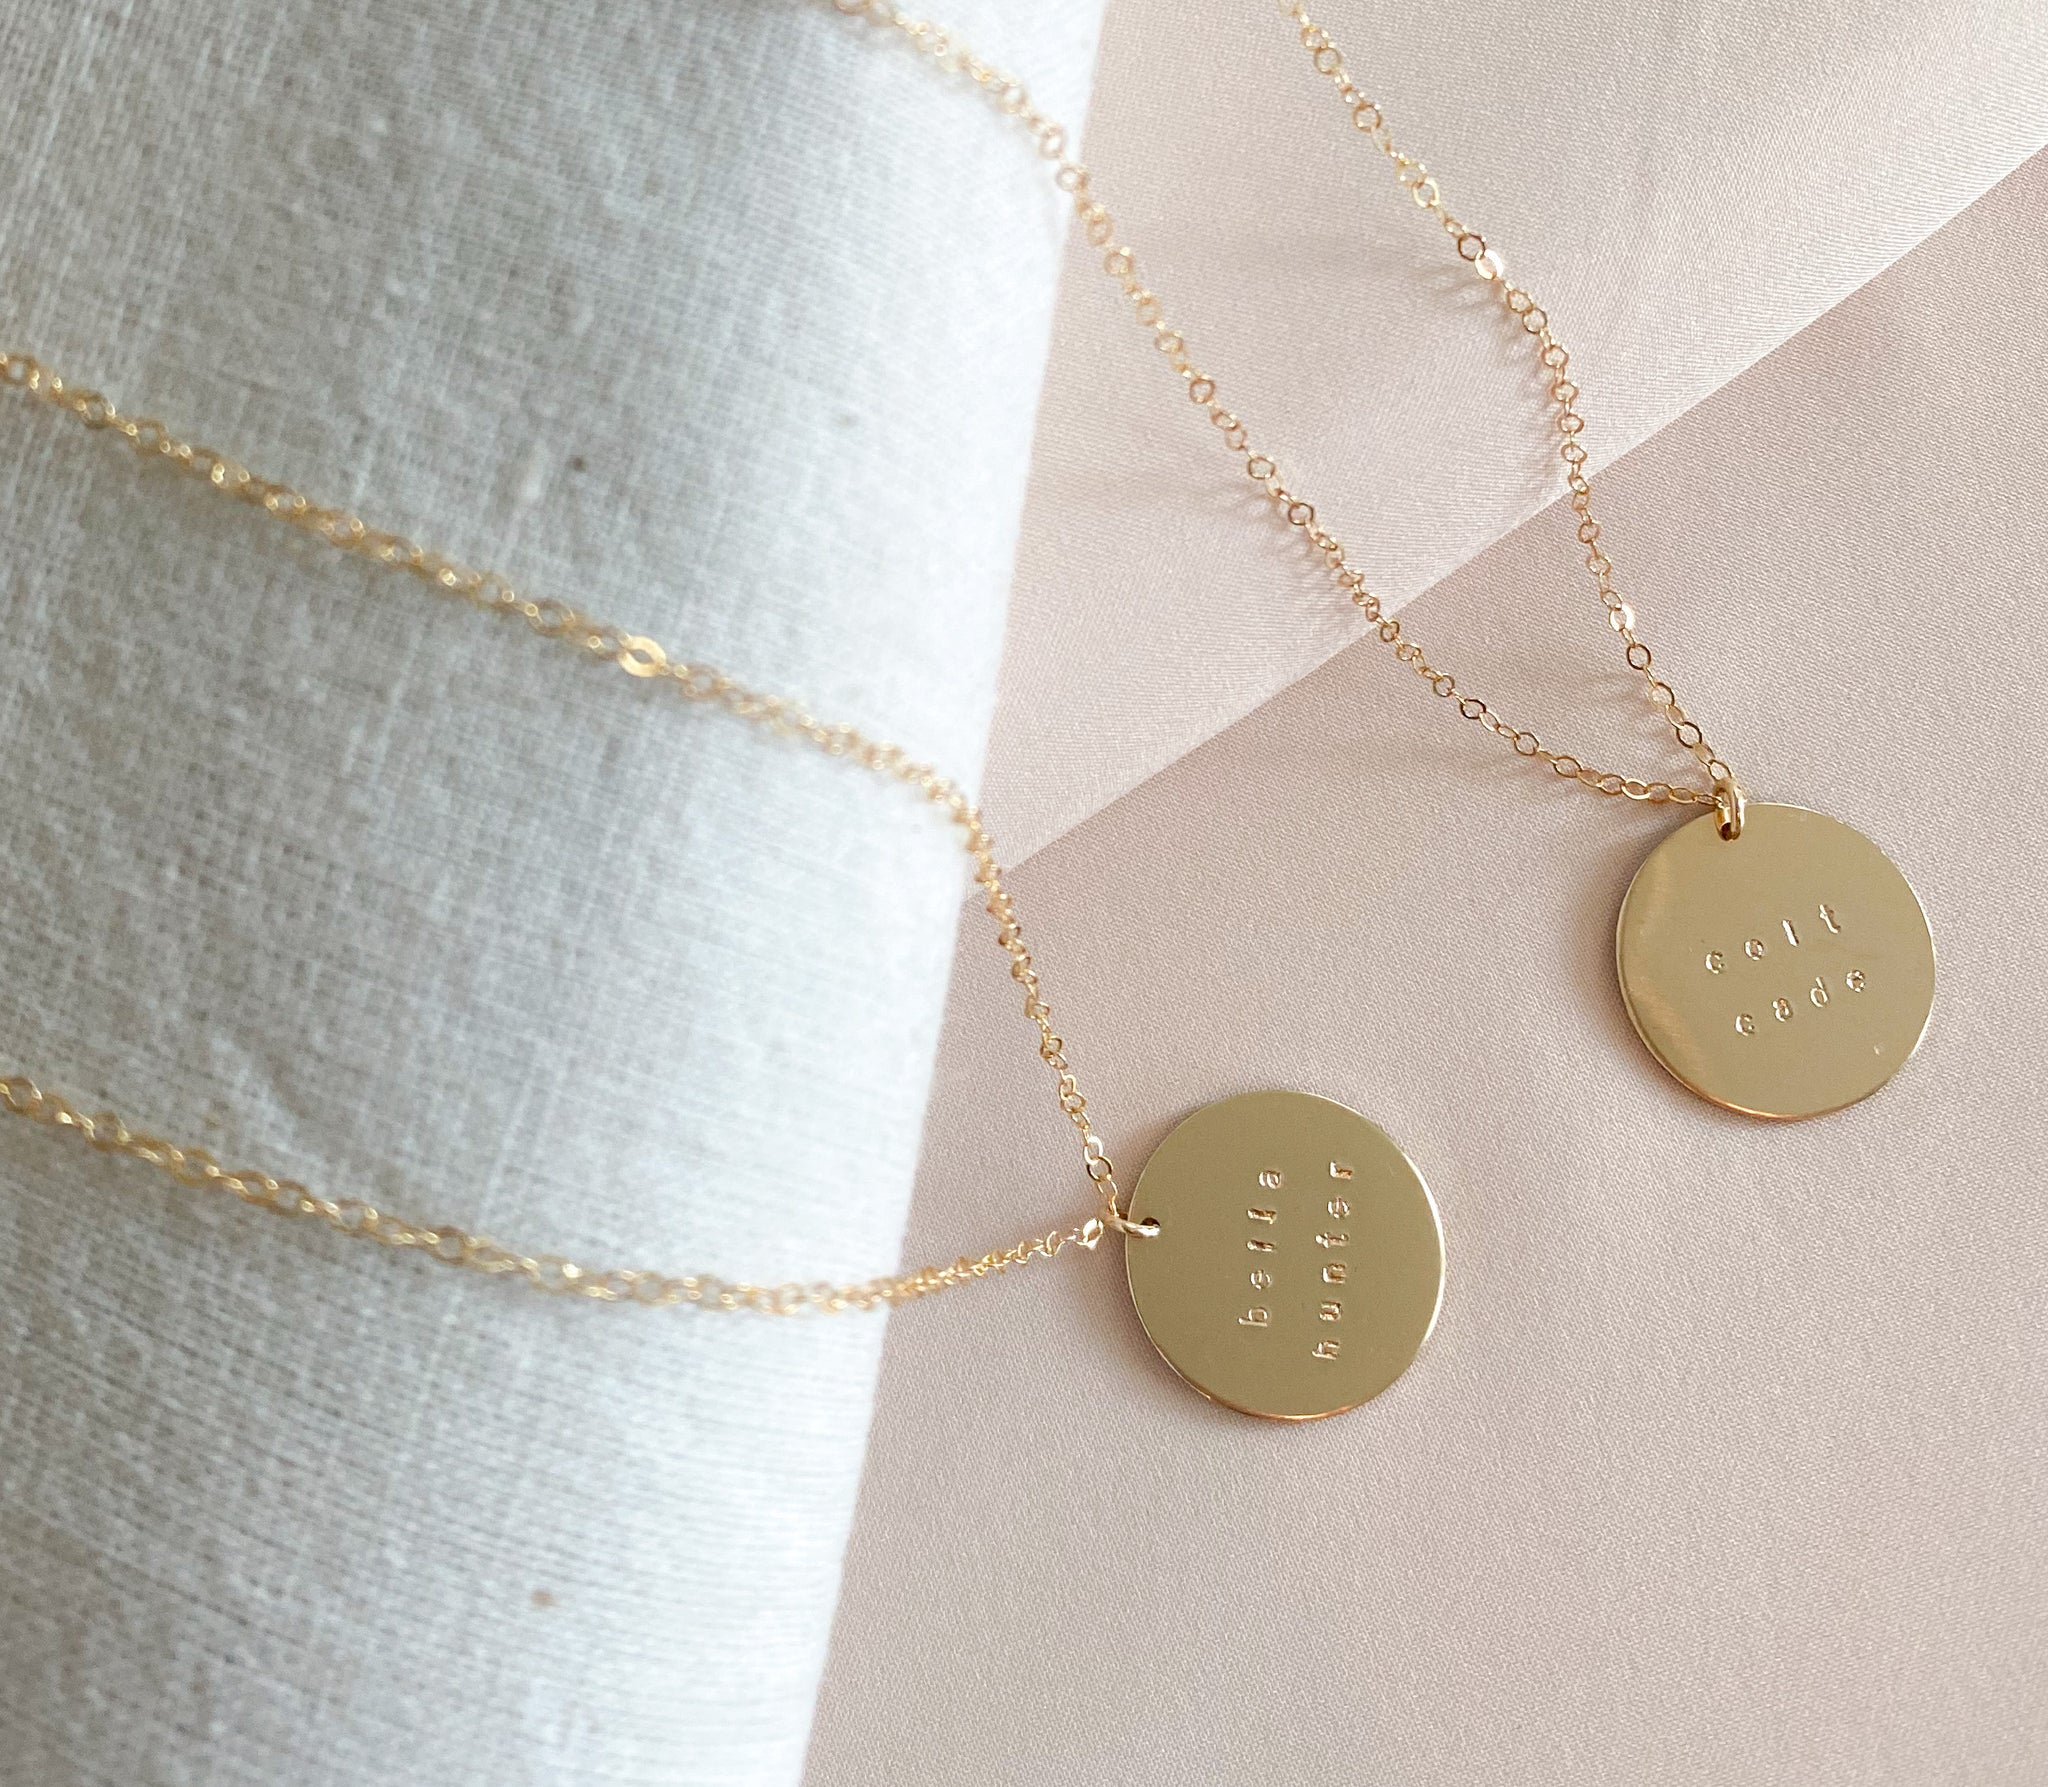 Personalized Hand Stamped Jewelry